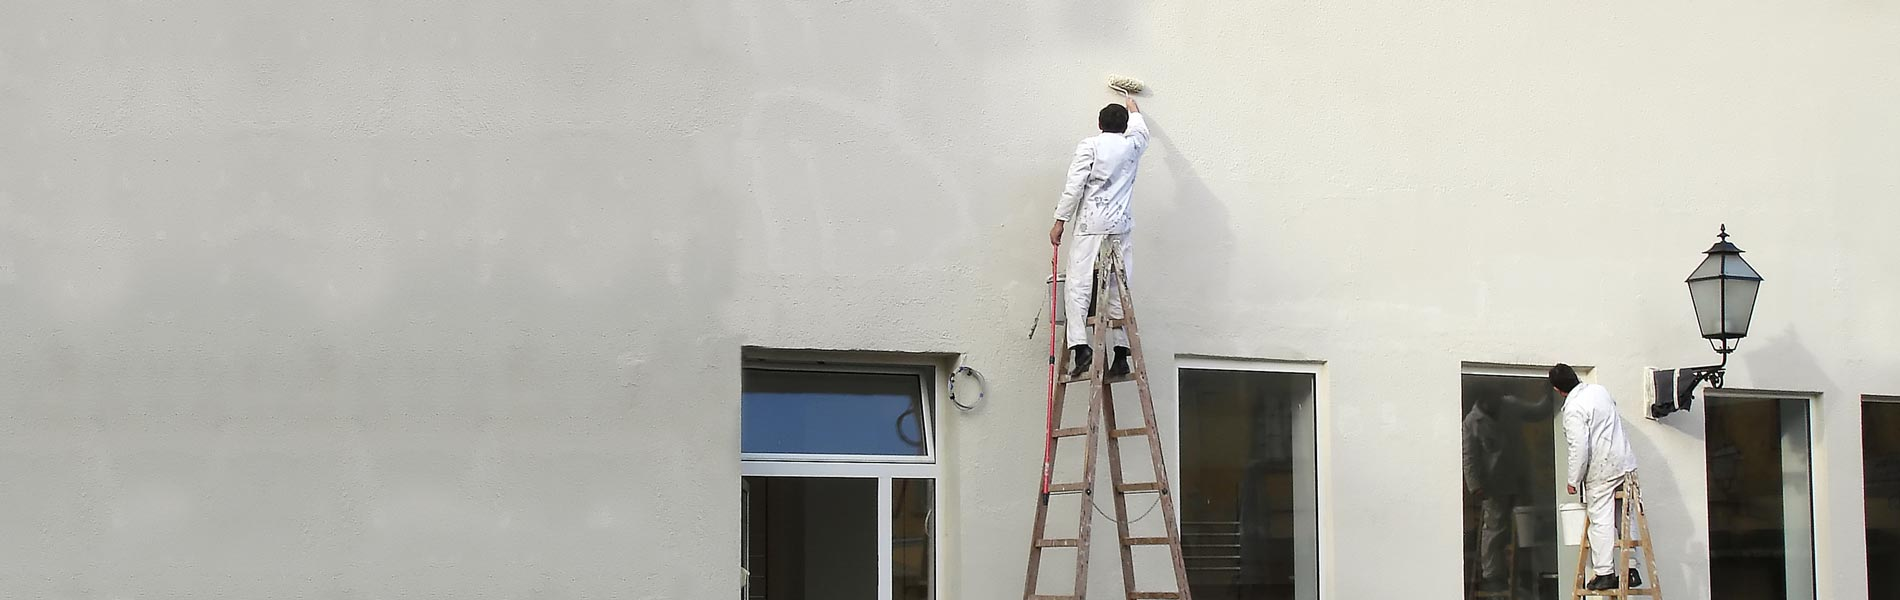 Cannon Afb Commercial Painting